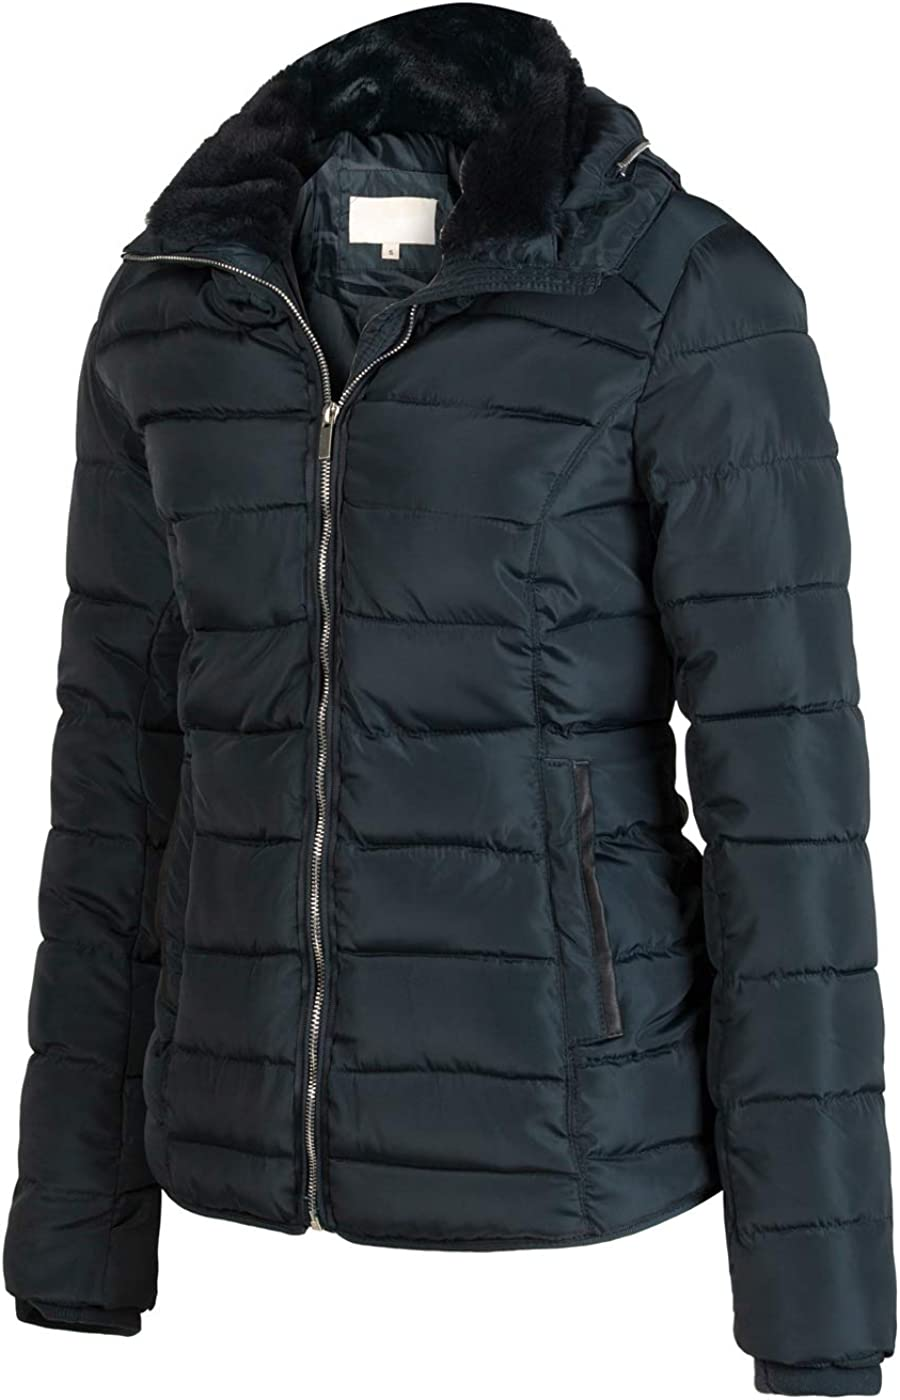 Bellivera Womens Quilted Lightweight Padding Jacket Puffer Bubble Coat Cotton Filling for Spring Fall and Winter